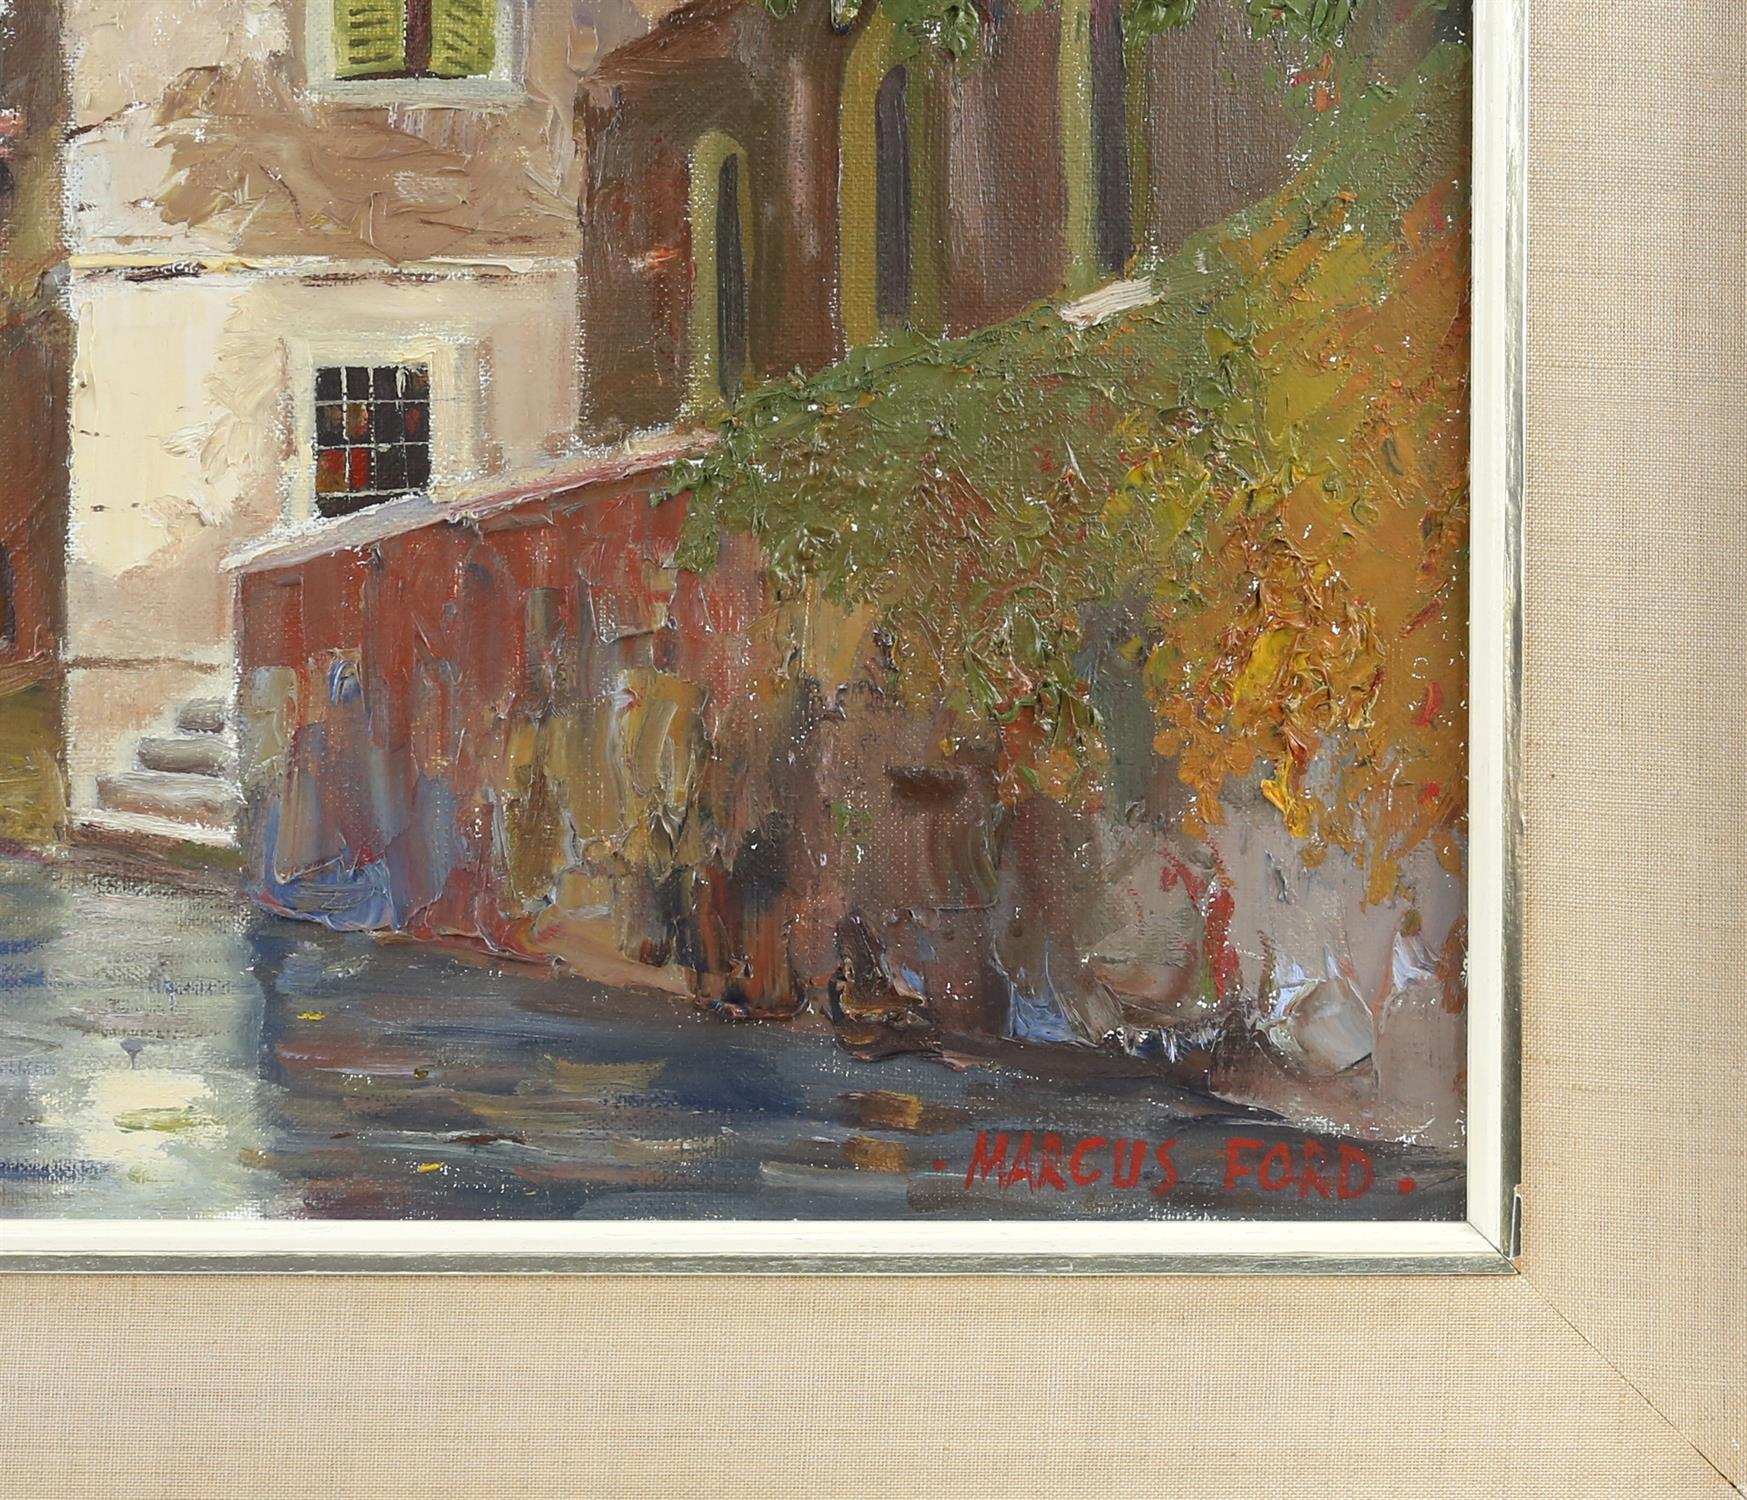 Marcus Ford (British 1914-1989), Venice canal scene, signed, oil on canvas, 44.5 x 74.5cm, - Image 3 of 4